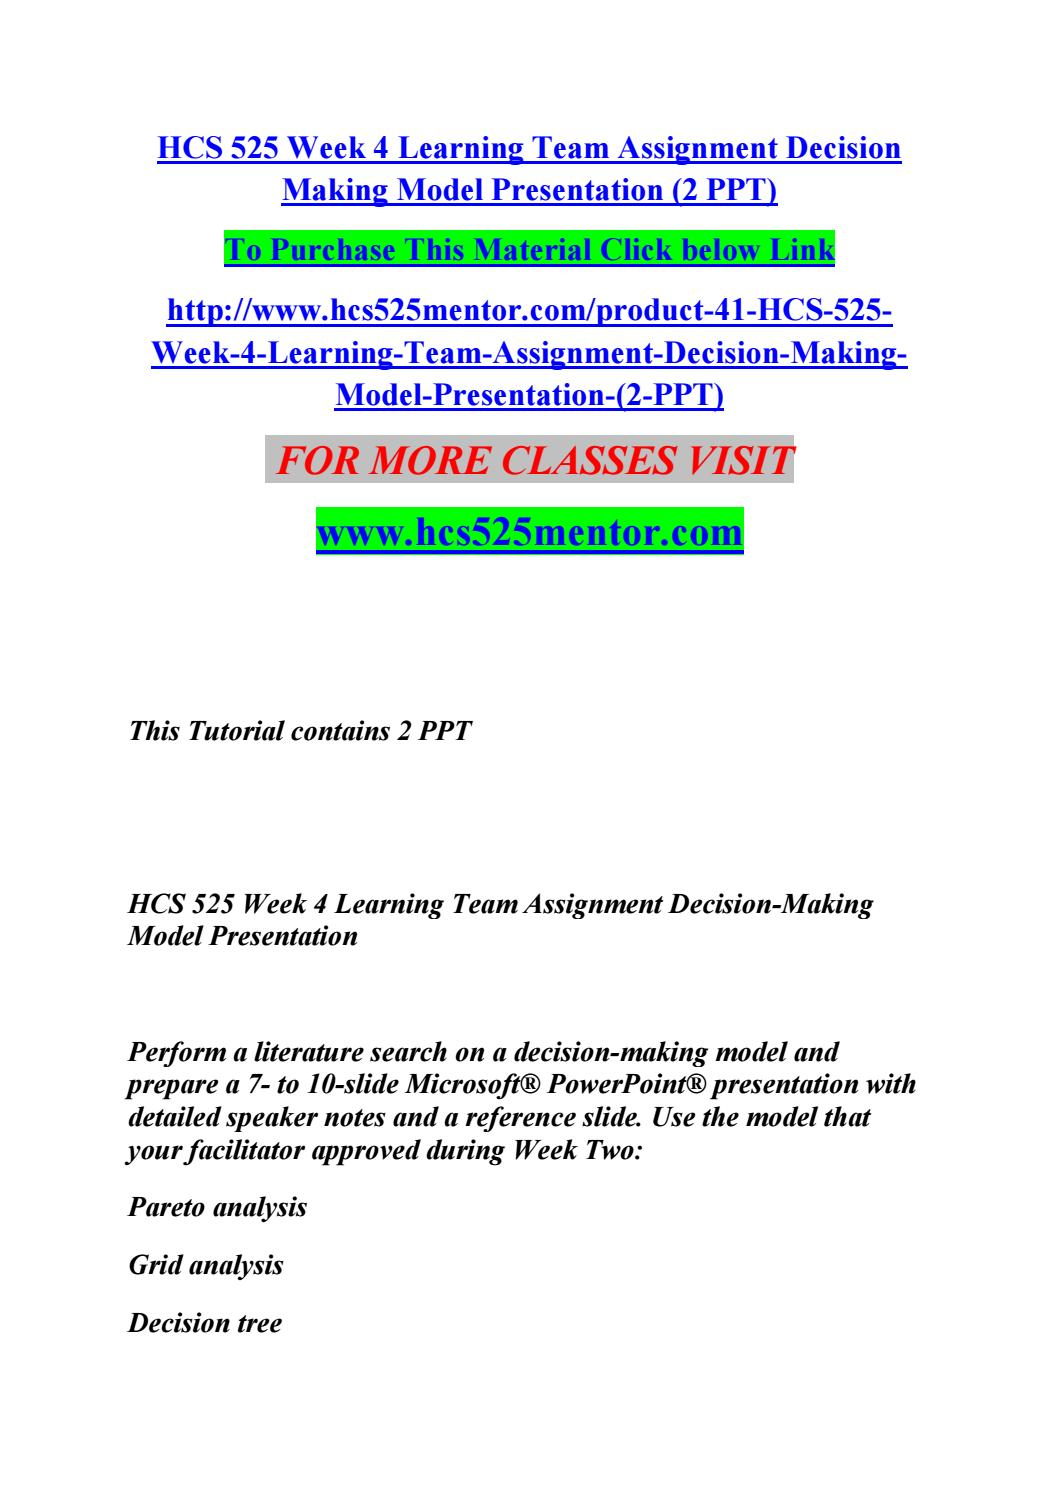 Hcs 525 week 4 learning team assignment decision making